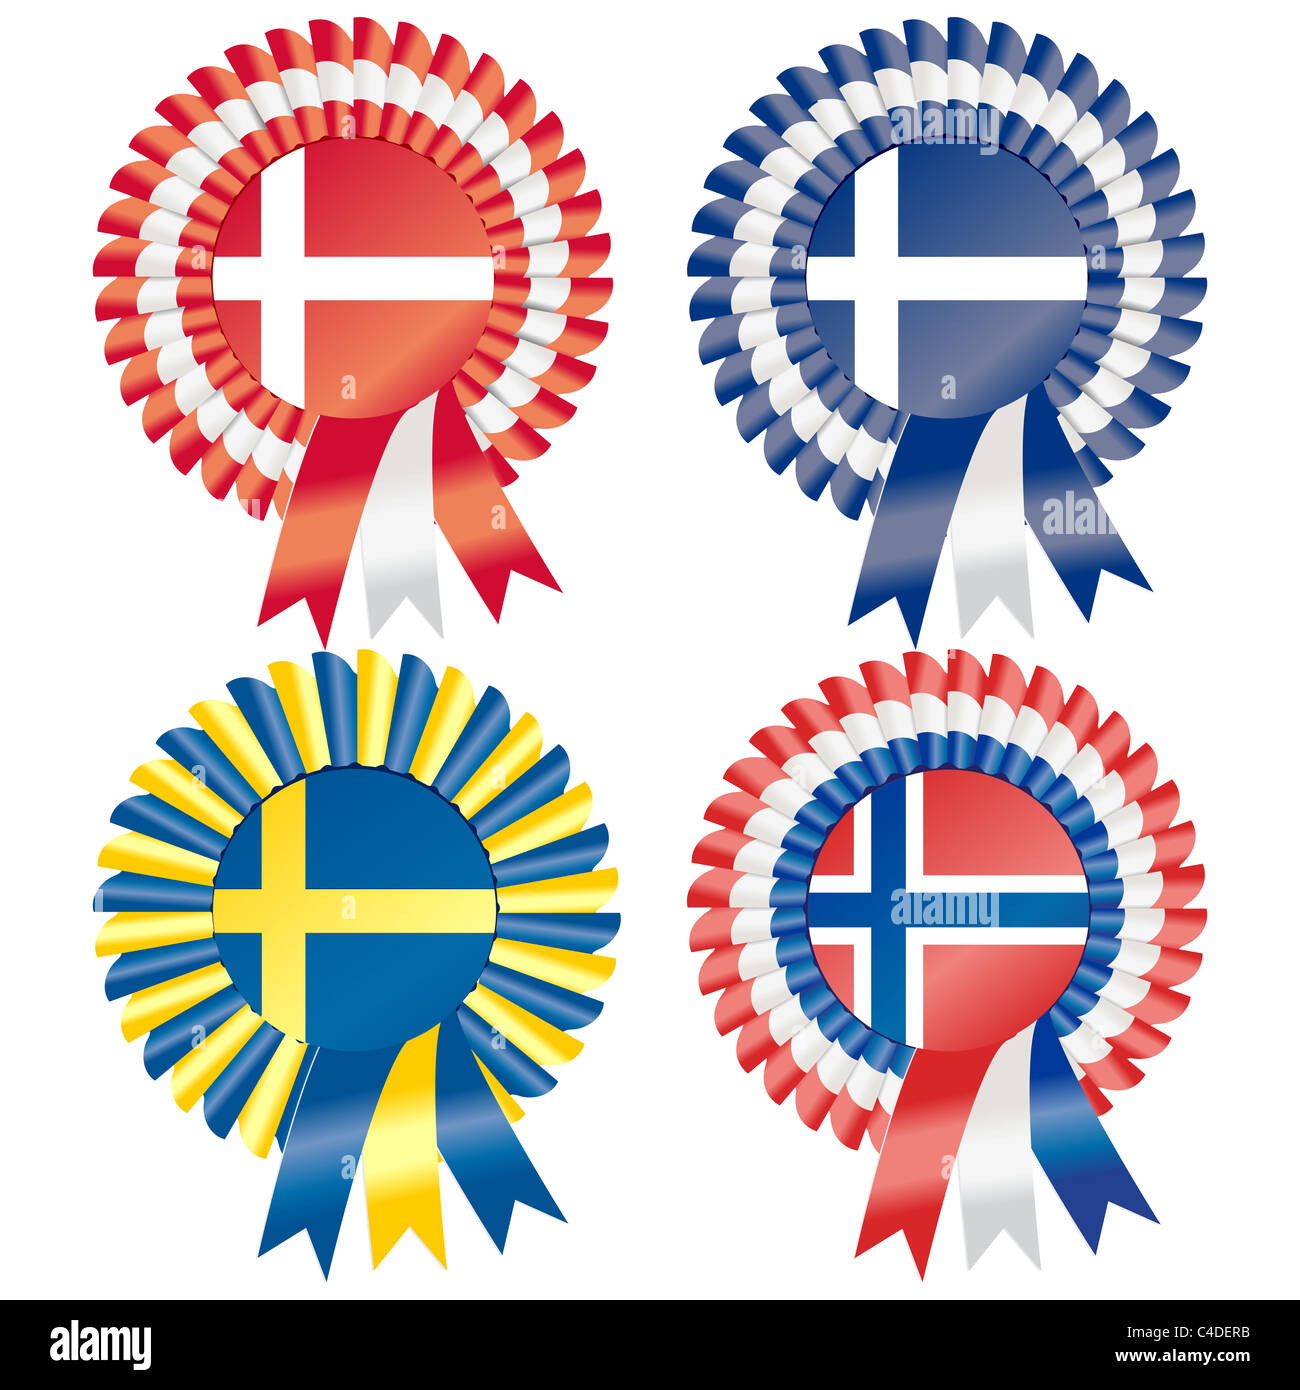 Rosettes to represent Northern European countries, including Denmark, Finland, Norway and Sweden - Stock Image